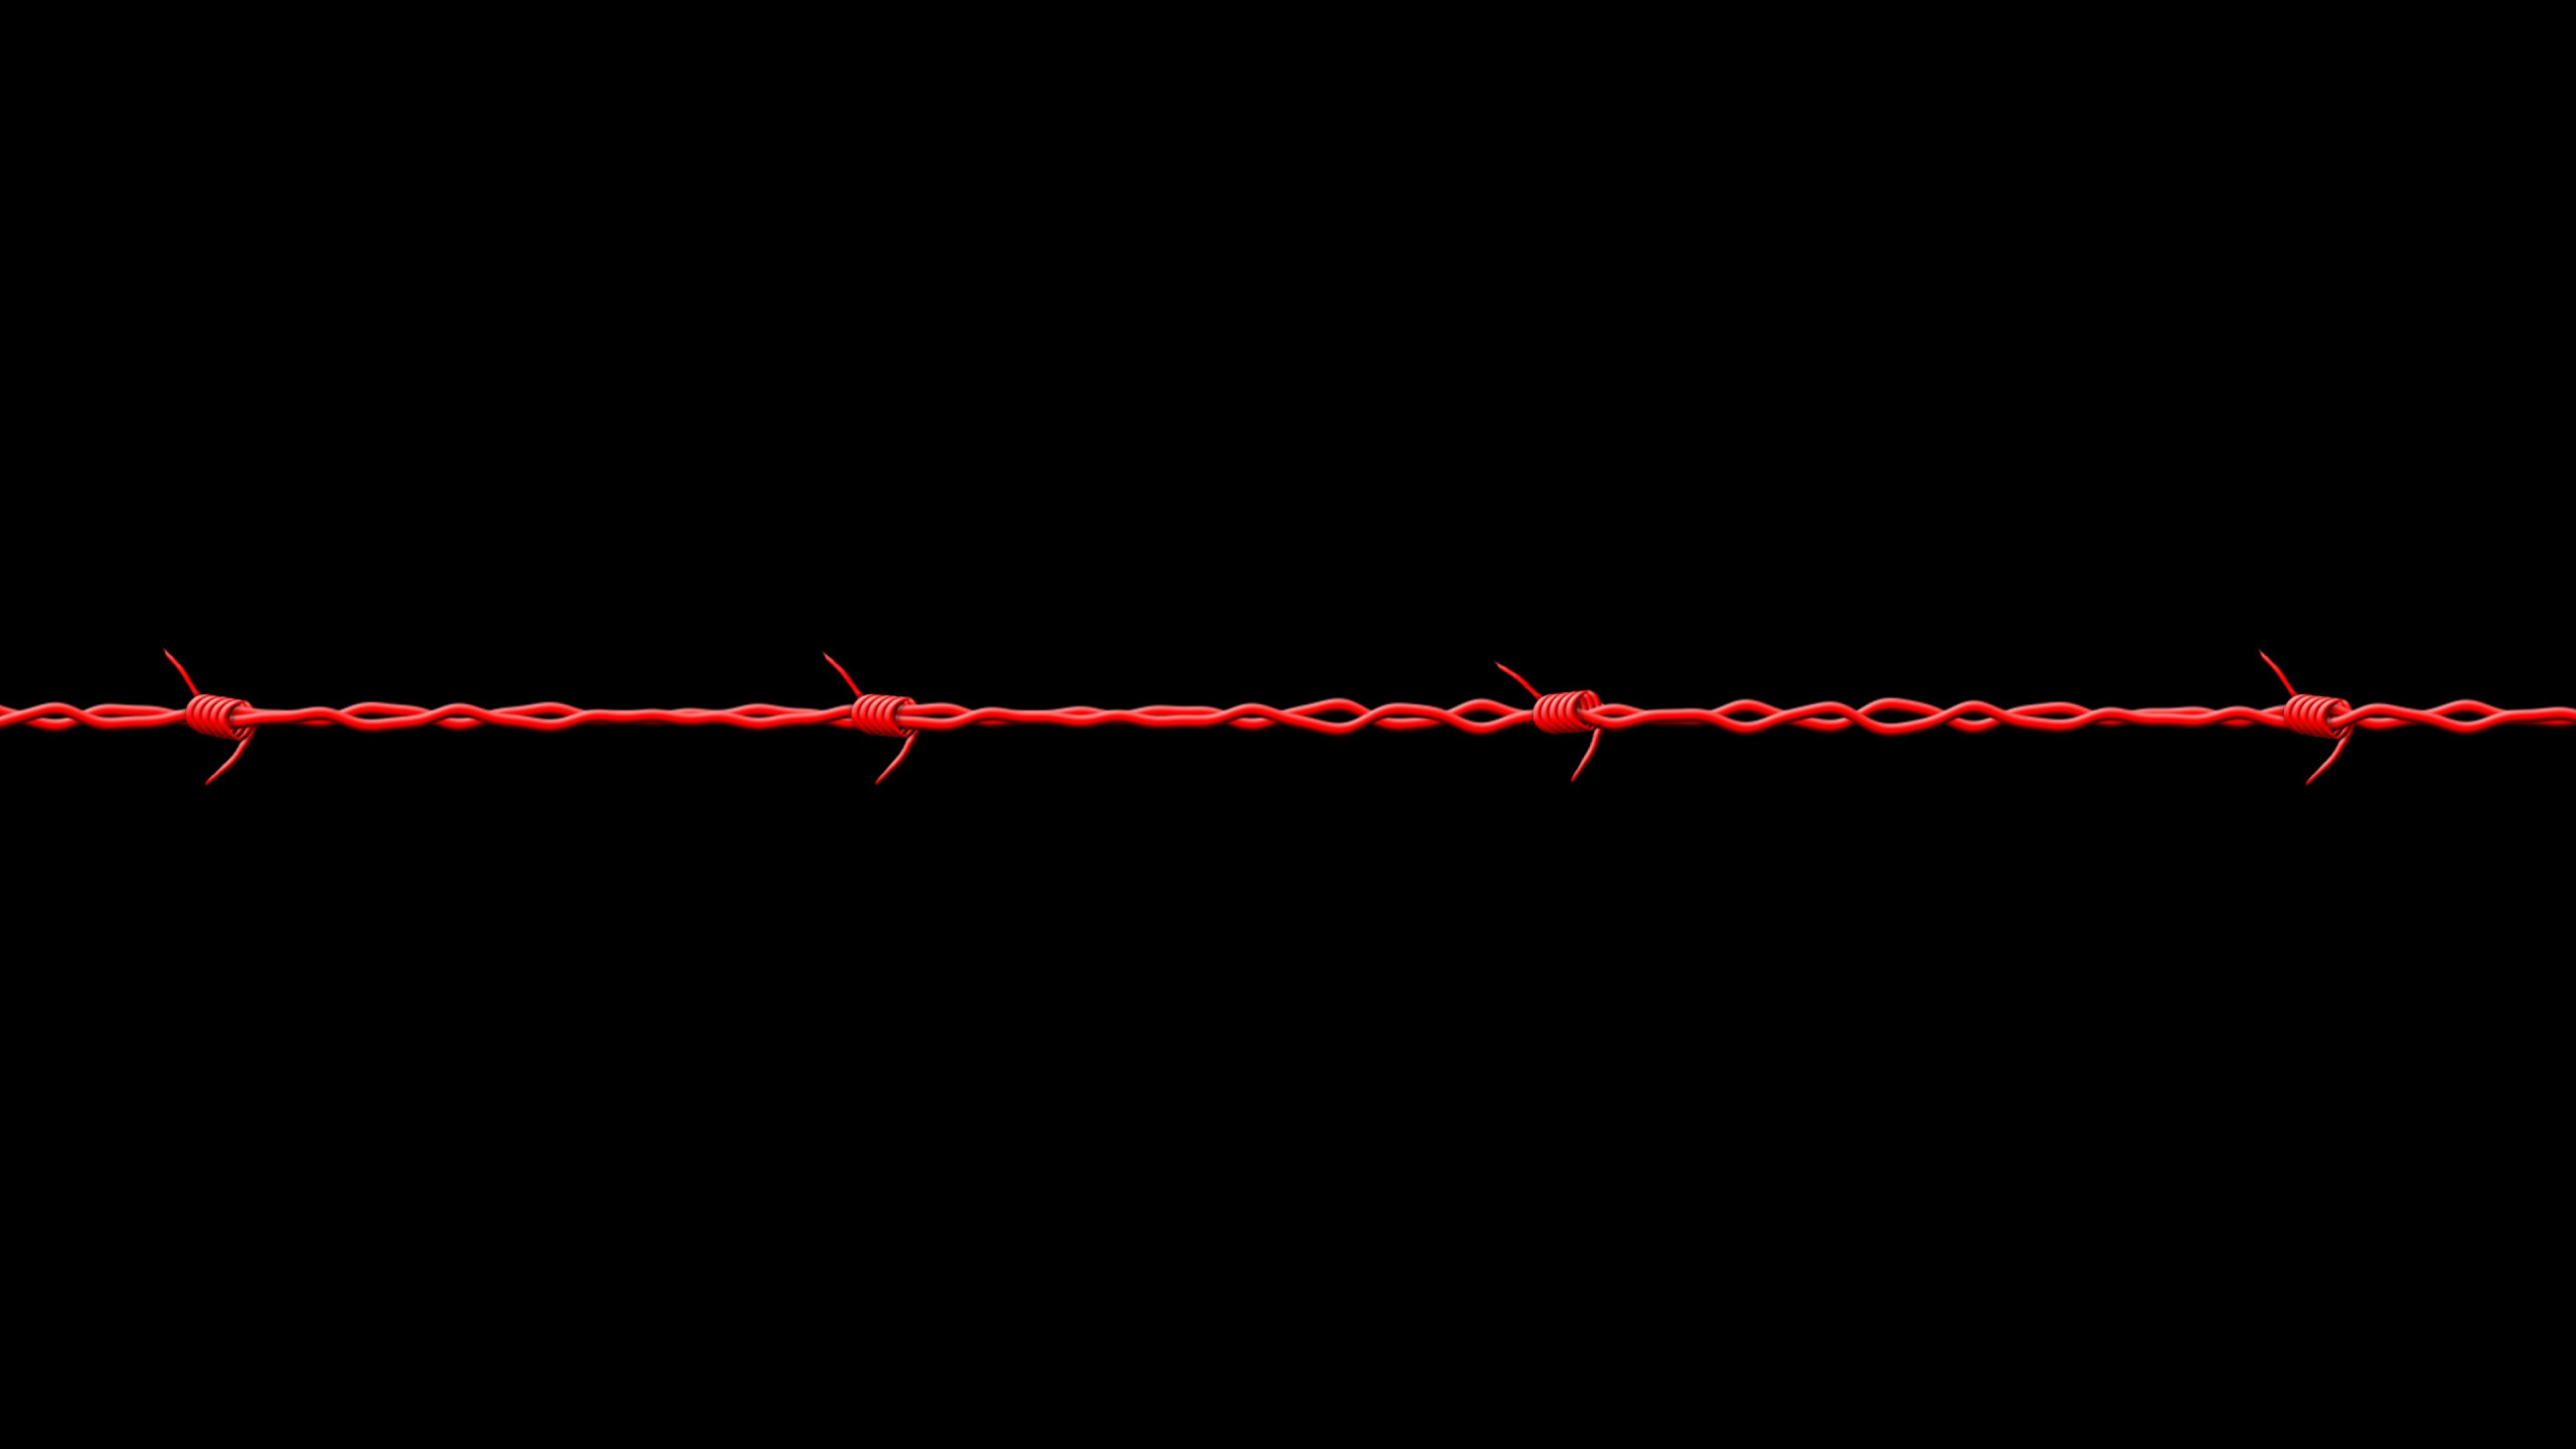 barb wire digital art wide wallpaper 54324